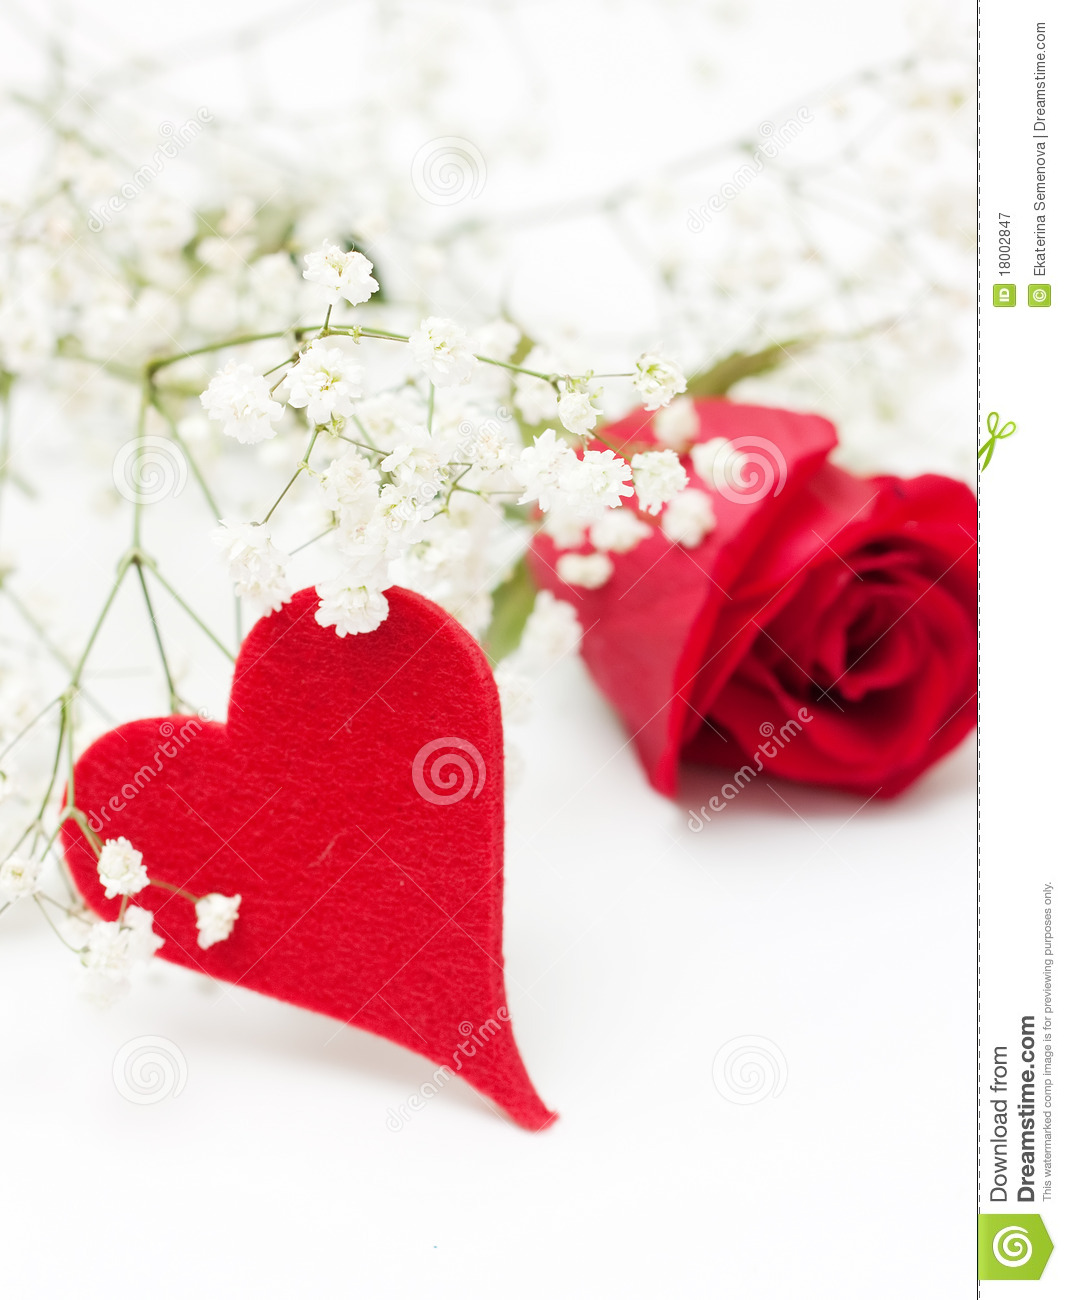 Red Rose With Heart Stock Image Image Of Romantic White 18002847